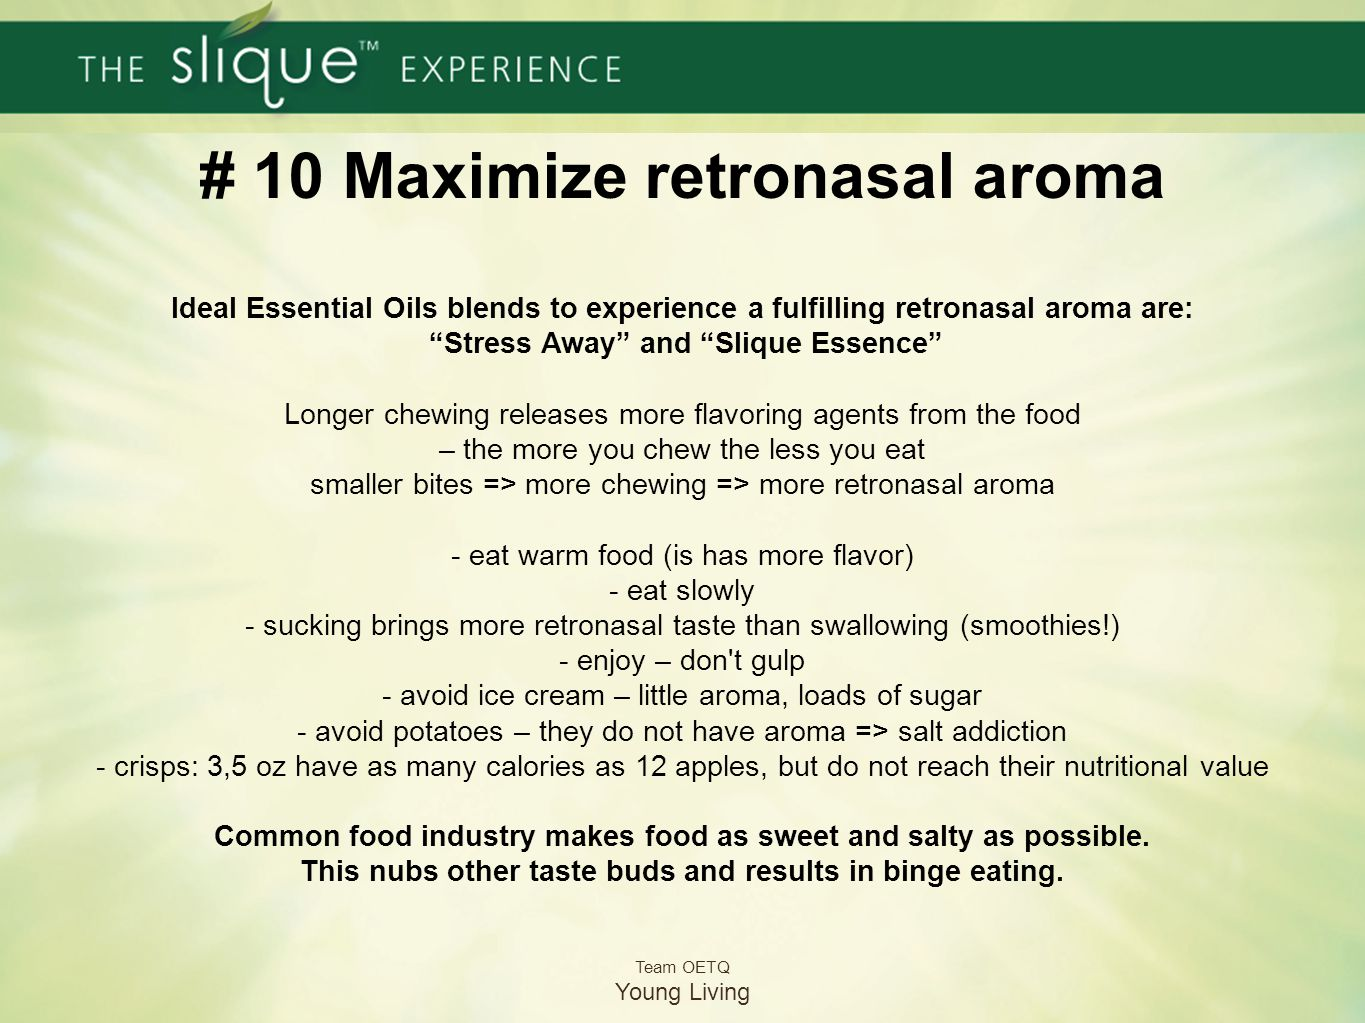 # 10 Maximize retronasal aroma Ideal Essential Oils blends to experience a fulfilling retronasal aroma are: Stress Away and Slique Essence Longer chewing releases more flavoring agents from the food – the more you chew the less you eat smaller bites => more chewing => more retronasal aroma - eat warm food (is has more flavor) - eat slowly - sucking brings more retronasal taste than swallowing (smoothies!) - enjoy – don t gulp - avoid ice cream – little aroma, loads of sugar - avoid potatoes – they do not have aroma => salt addiction - crisps: 3,5 oz have as many calories as 12 apples, but do not reach their nutritional value Common food industry makes food as sweet and salty as possible. This nubs other taste buds and results in binge eating.